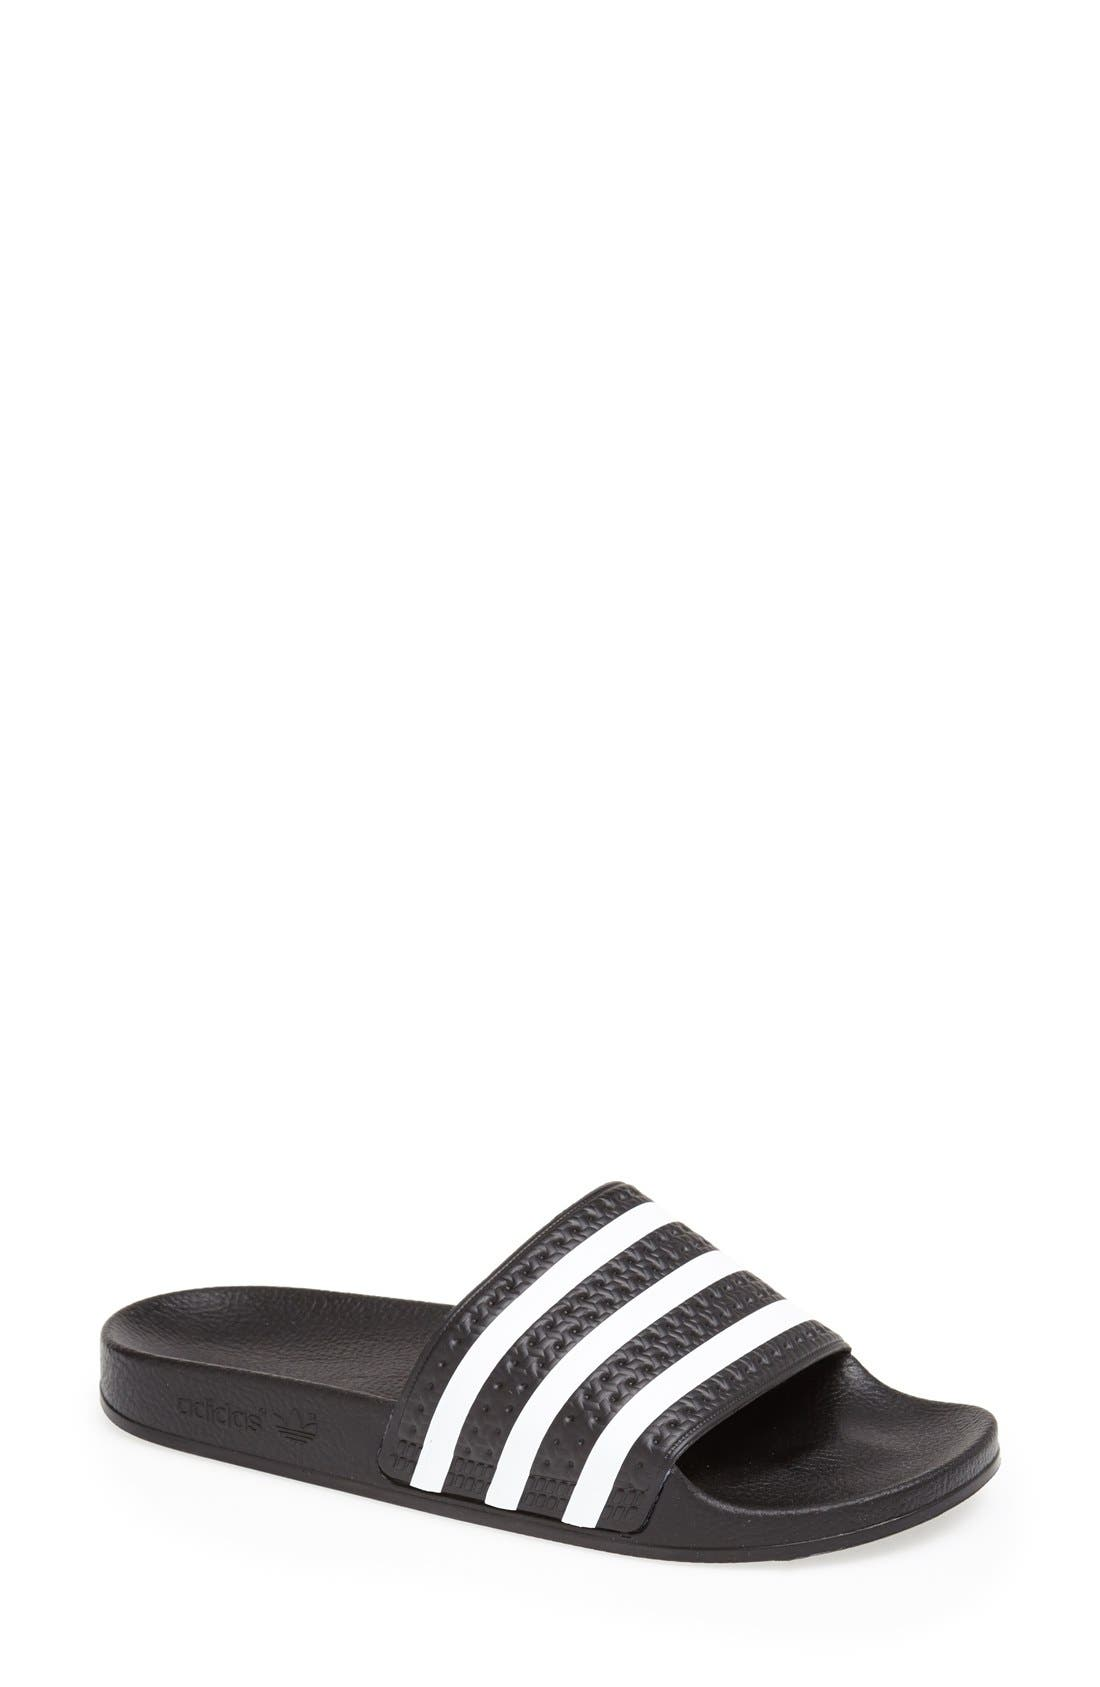 'Adilette' Slide Sandal, Main, color, BLACK/ WHITE